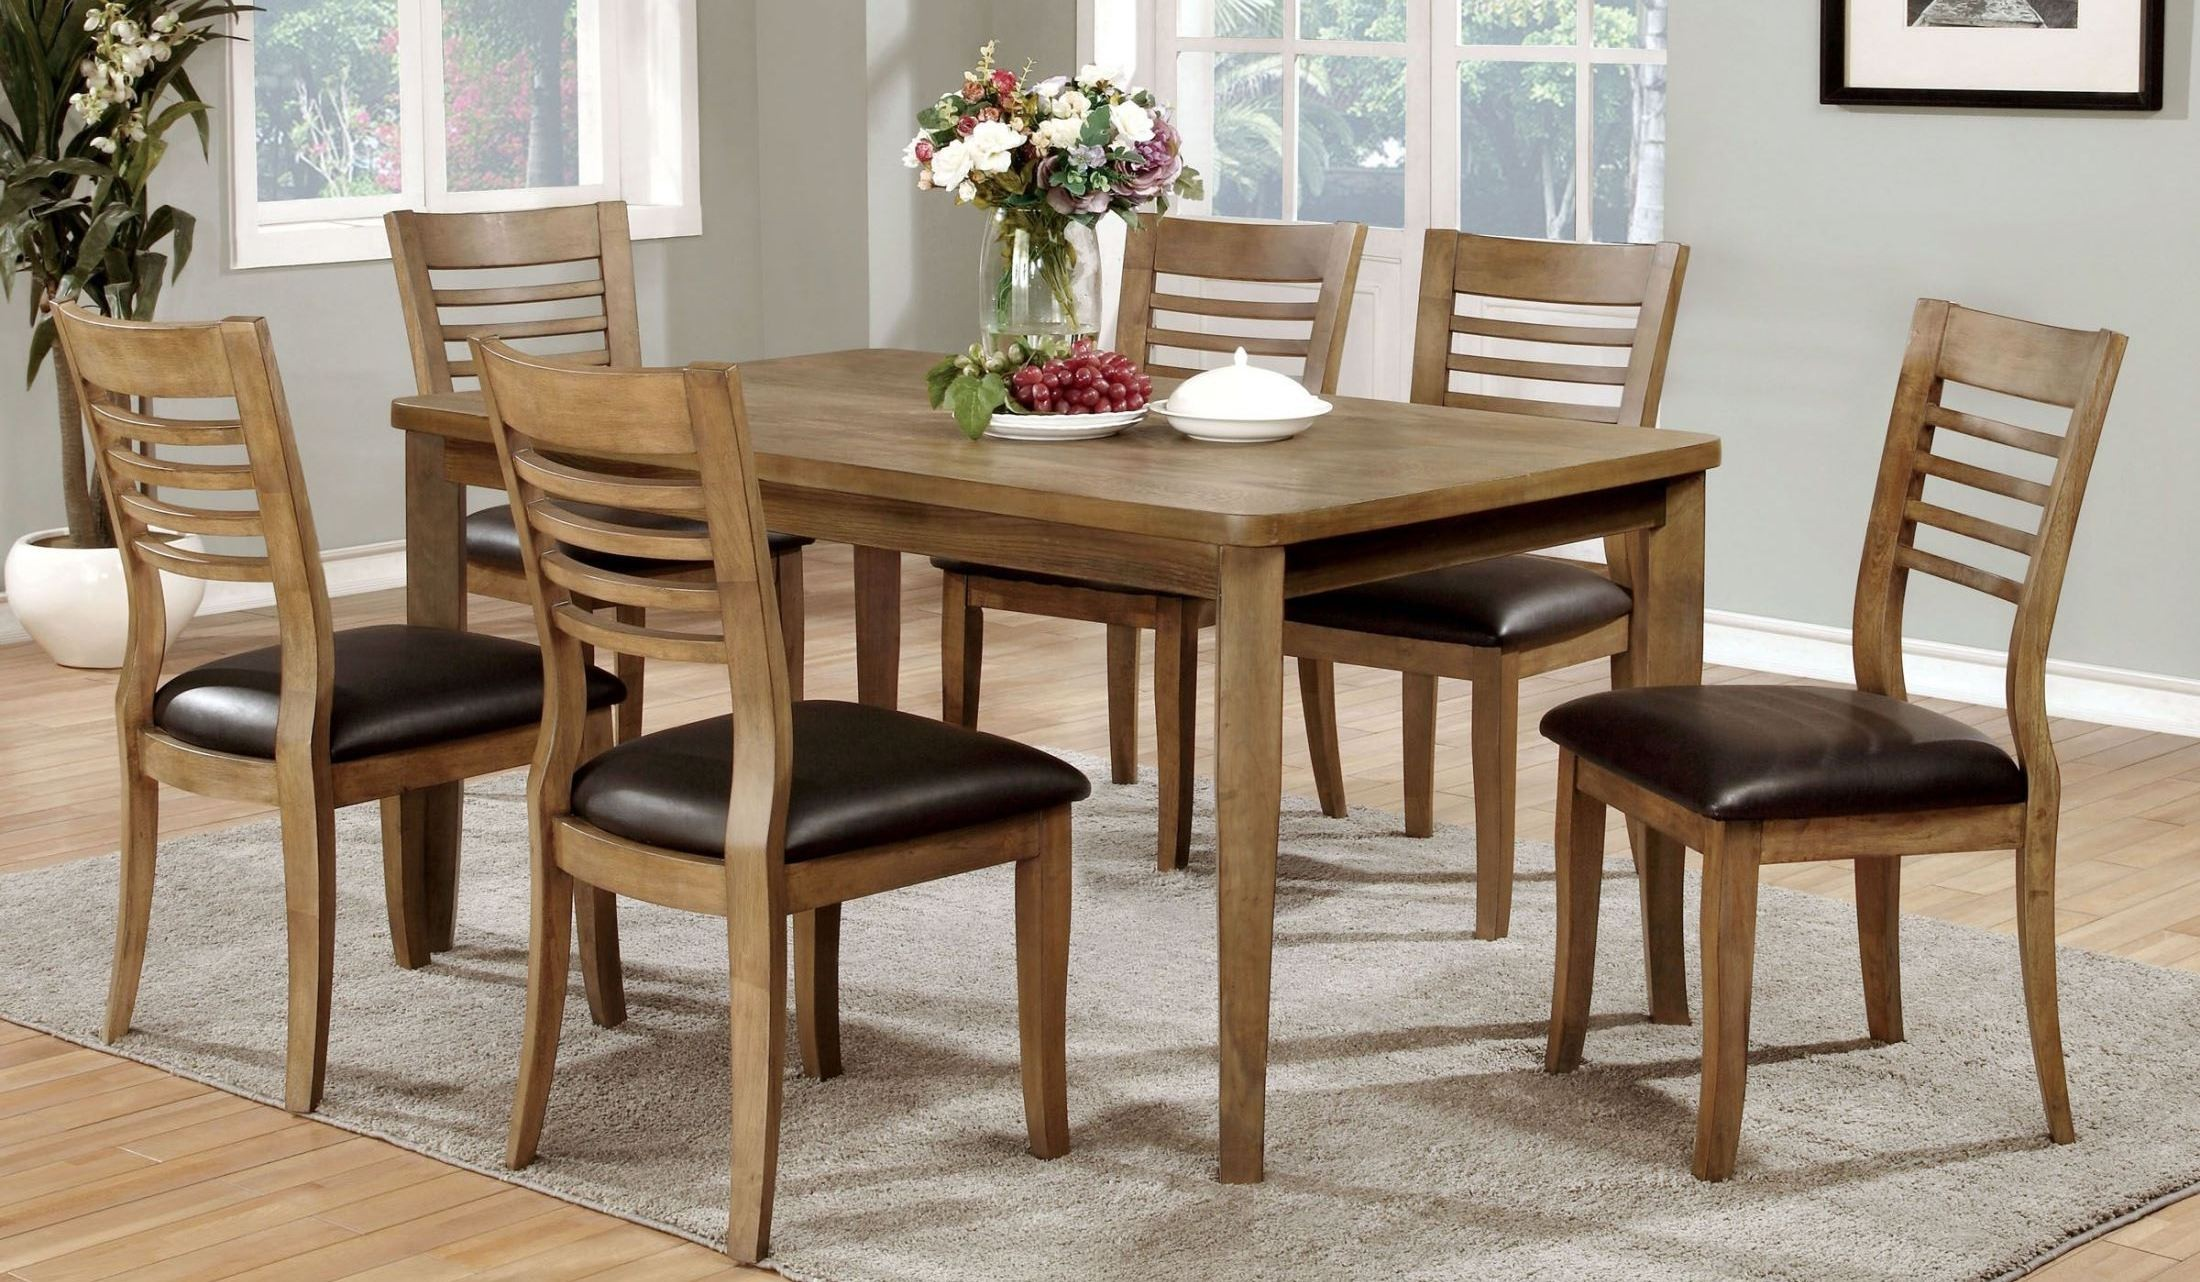 Dwight ii natural tone dining room set from furniture of for Dining room t